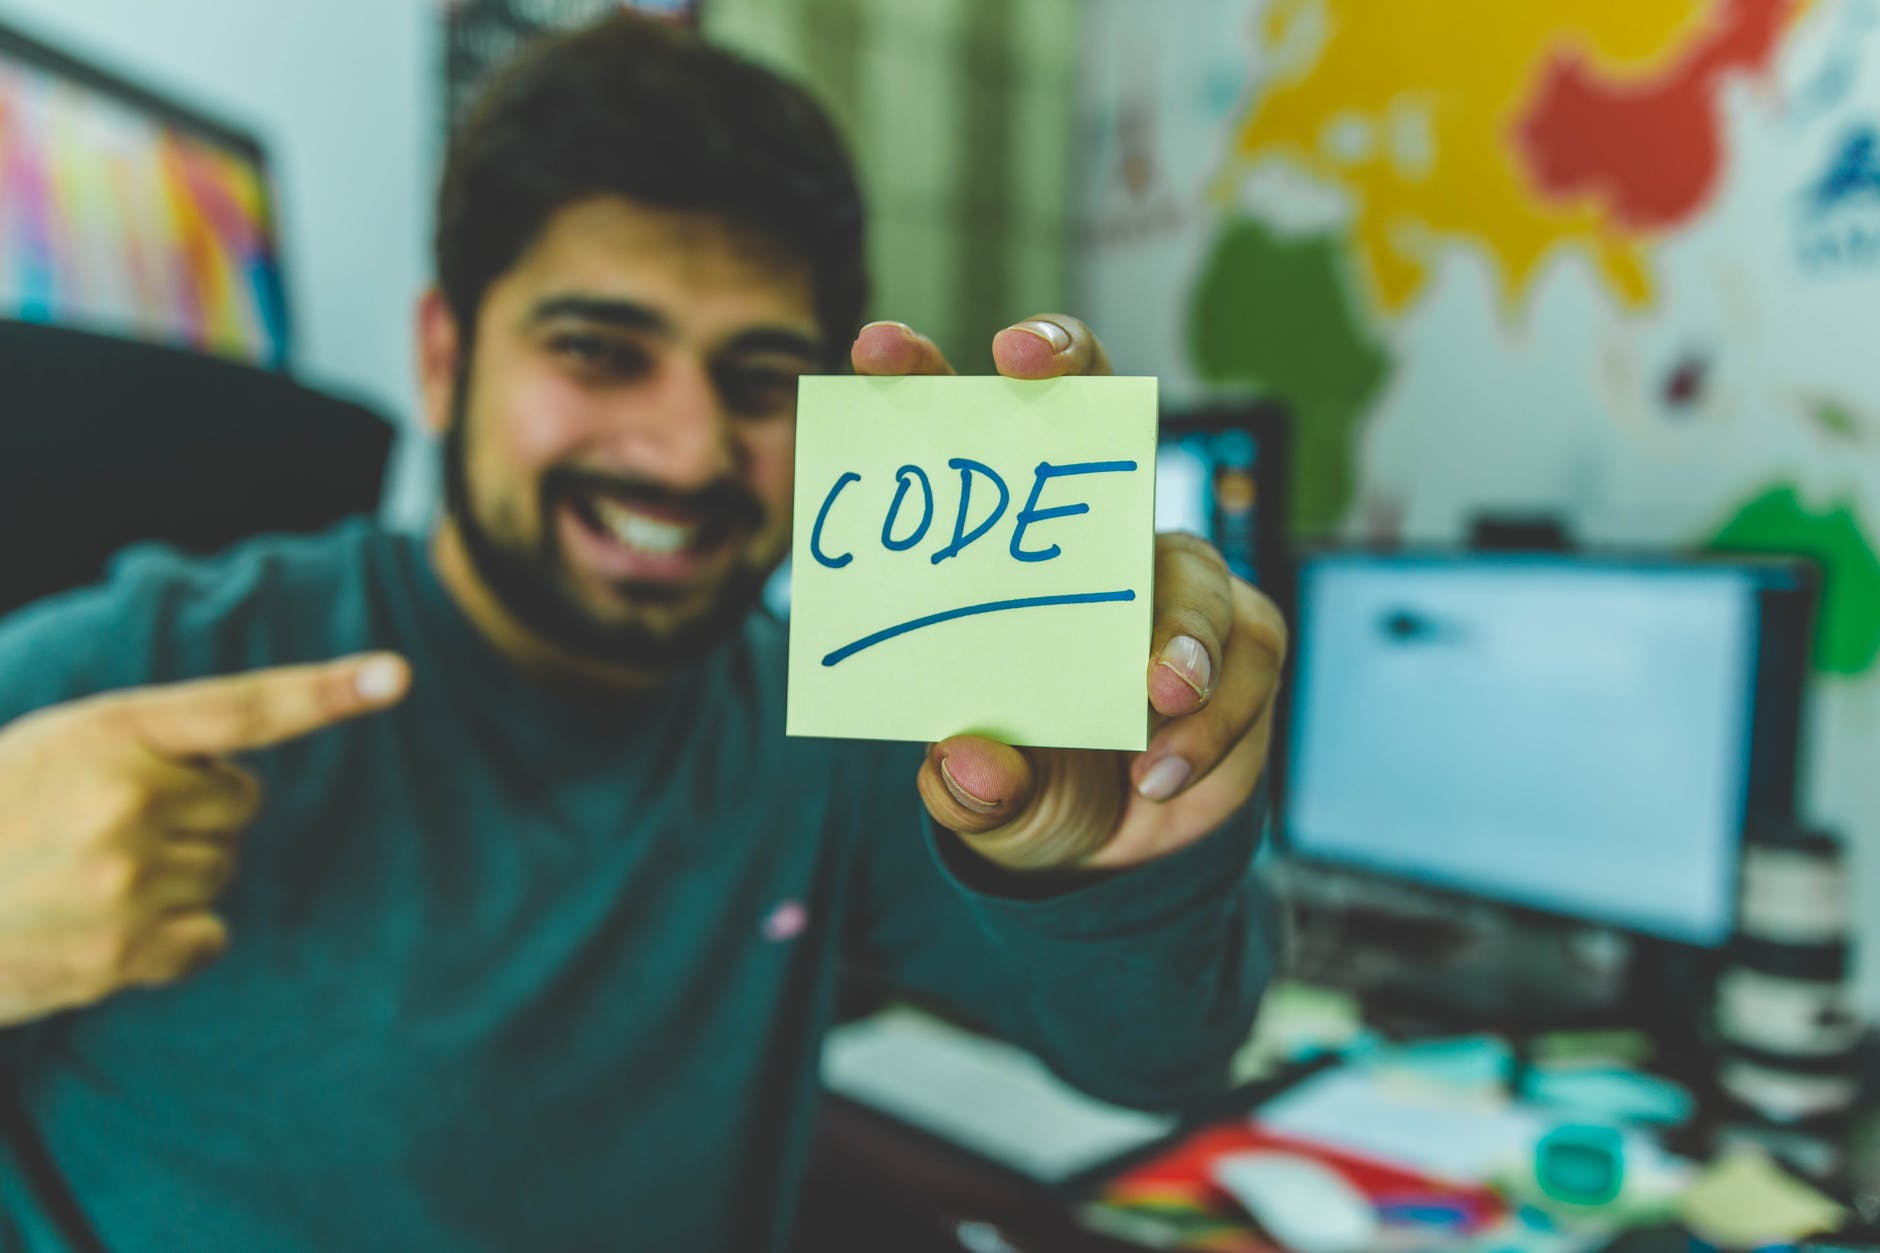 Product Manager Relationships: Software Engineers